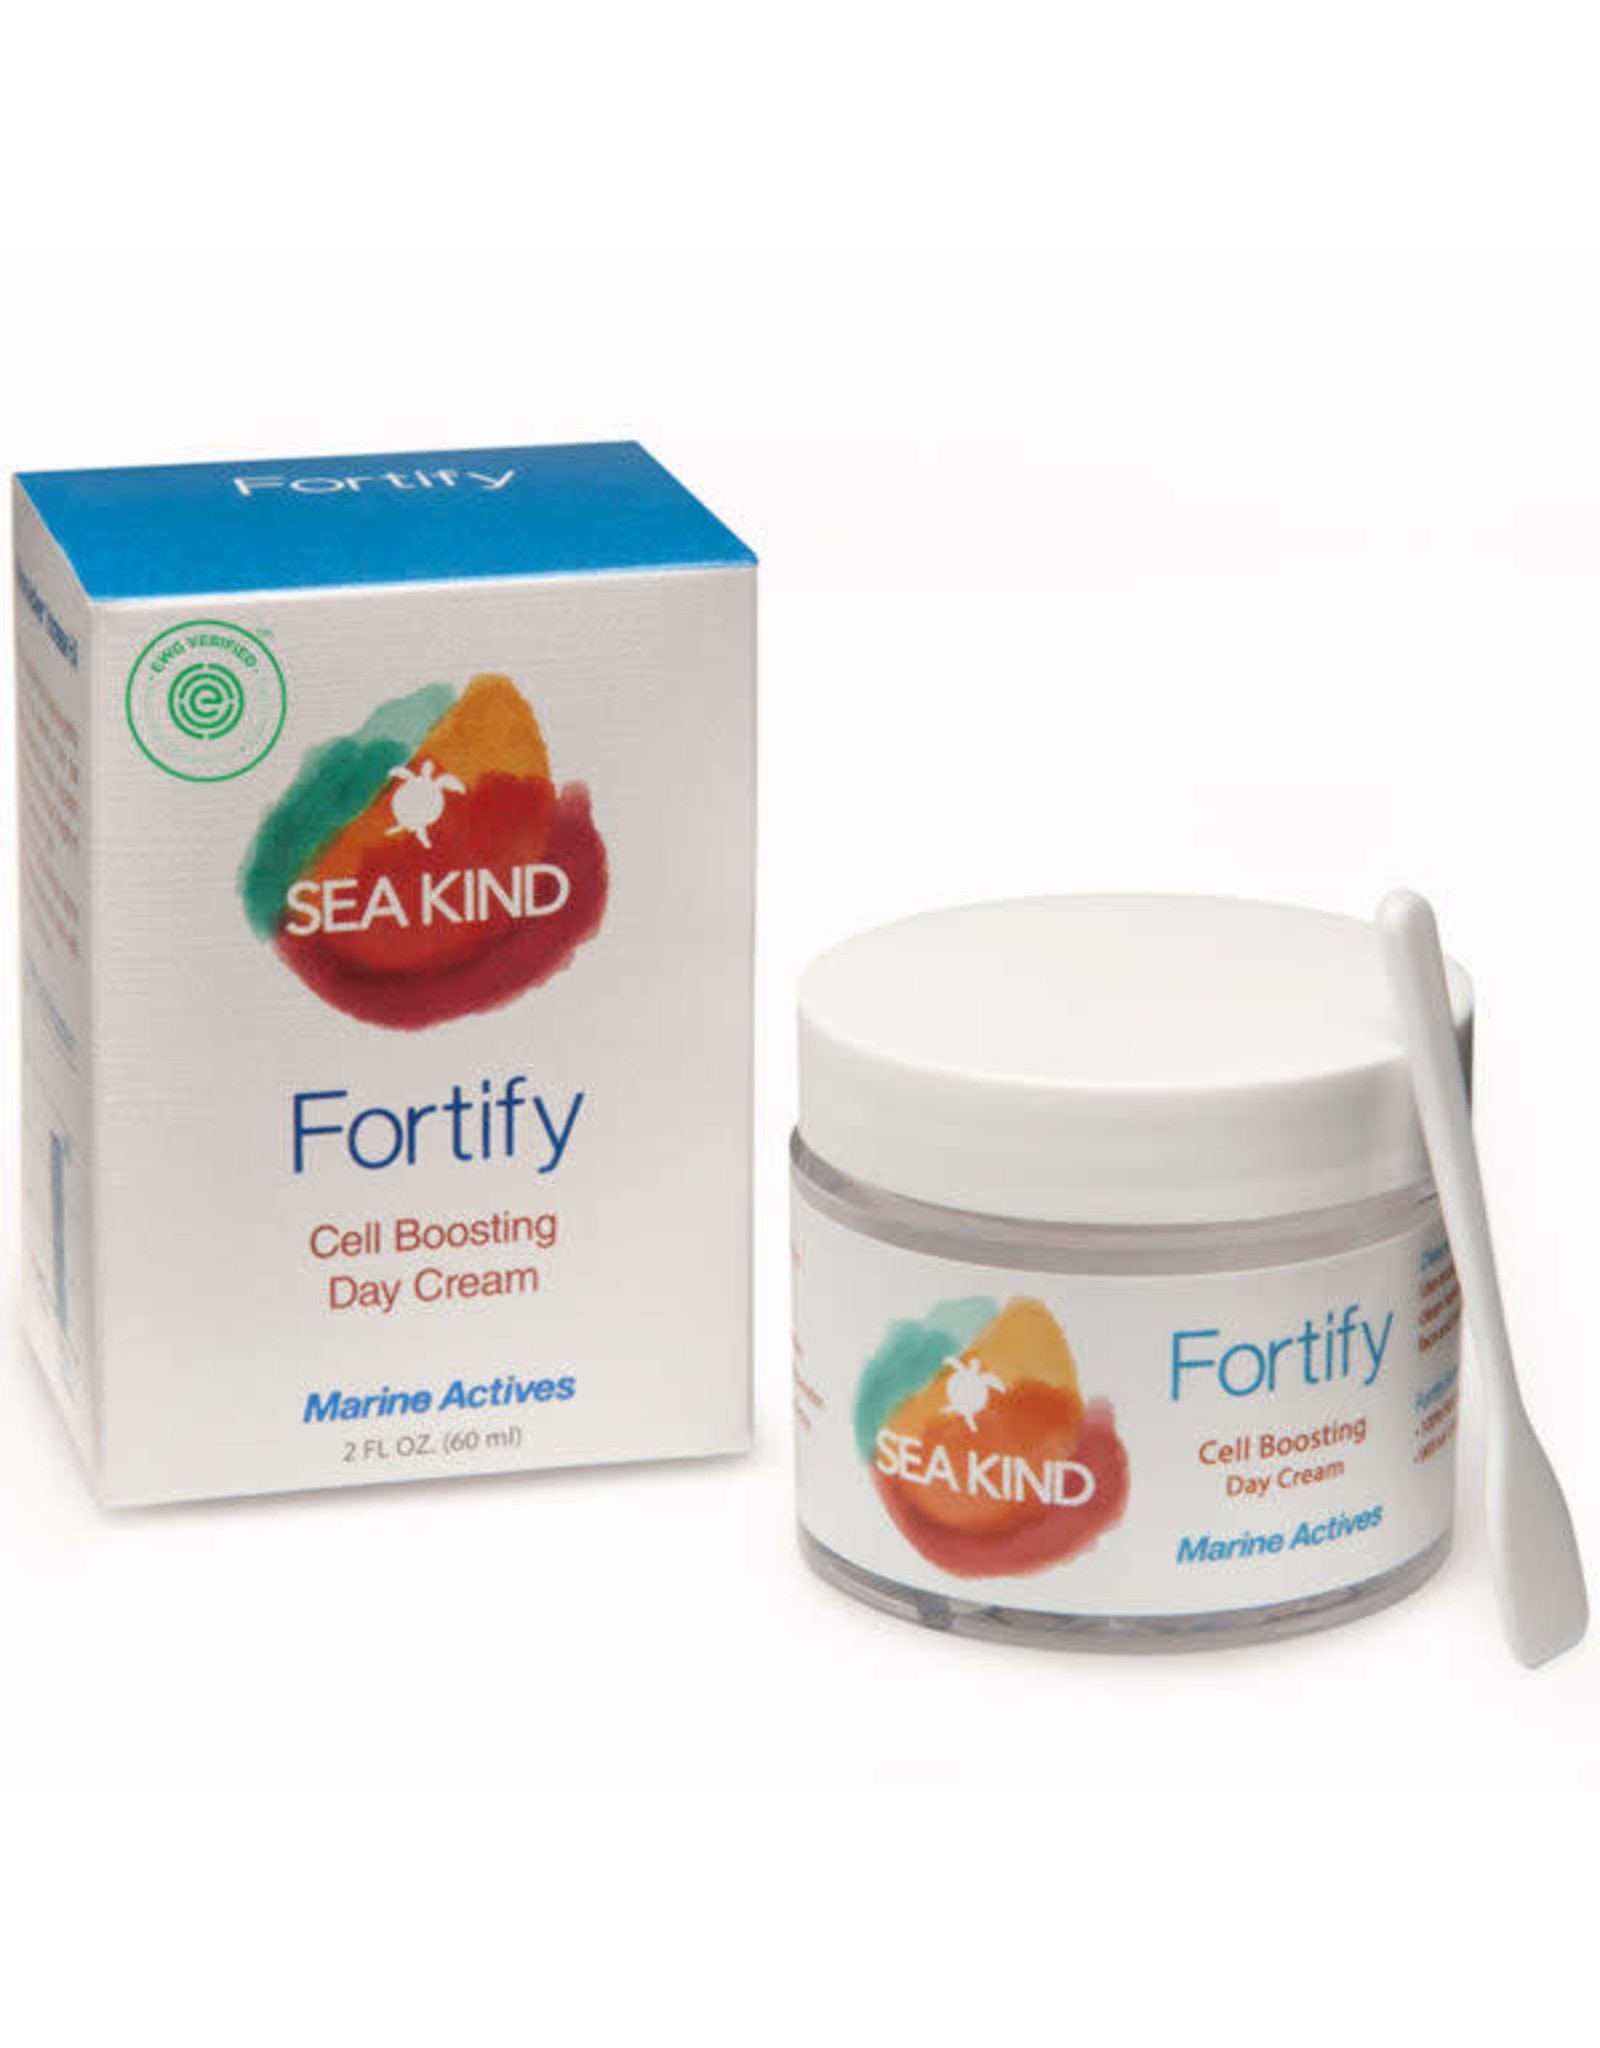 Fortifying Cell Boosting Day Cream